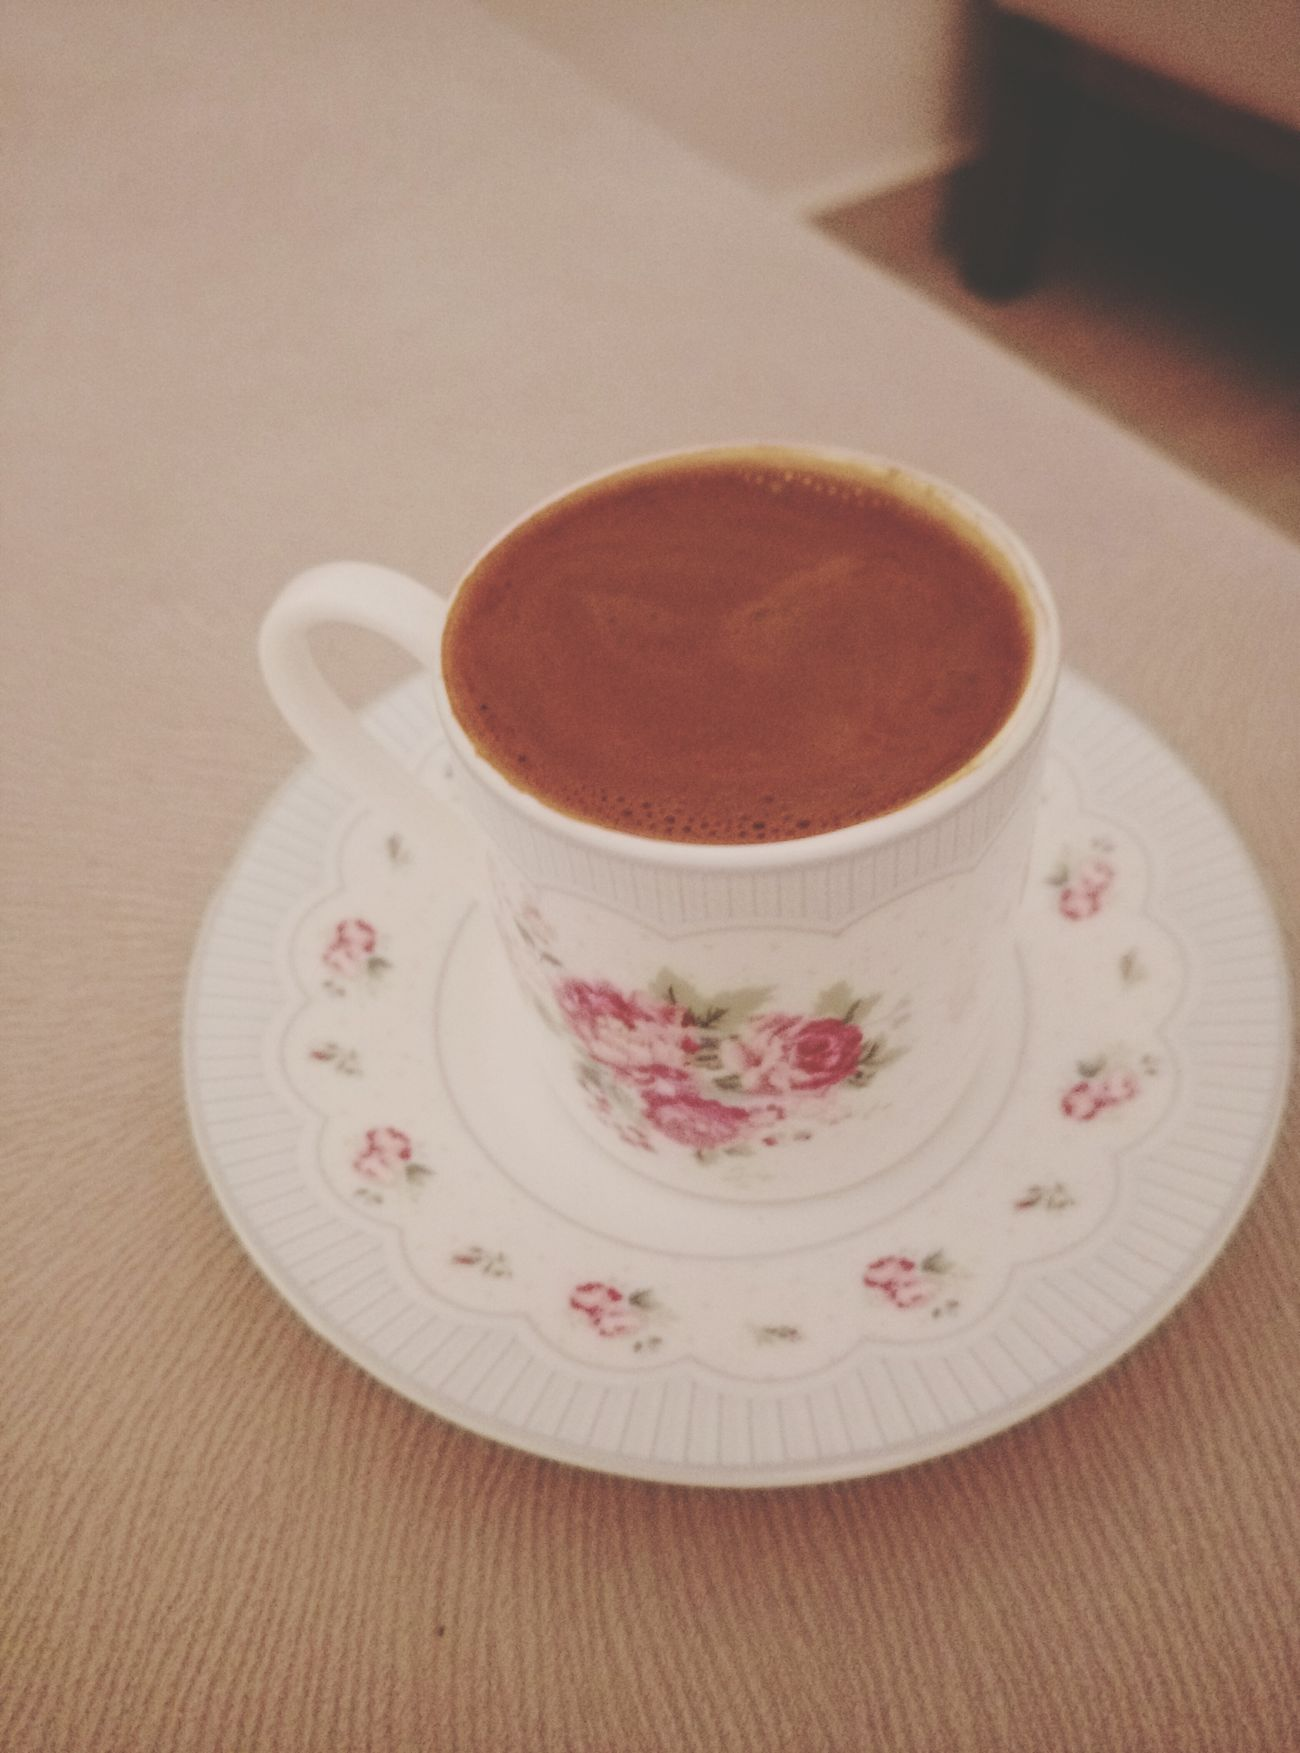 Drink Coffee - Drink Coffee Cup Food And Drink Cup Brown High Angle View Refreshment Close-up Heat - Temperature No People Turkey Turkish Turkish Delight Freshness Indoors Turkishcoffee Coffee Türkkahvesi Freshness Indoors